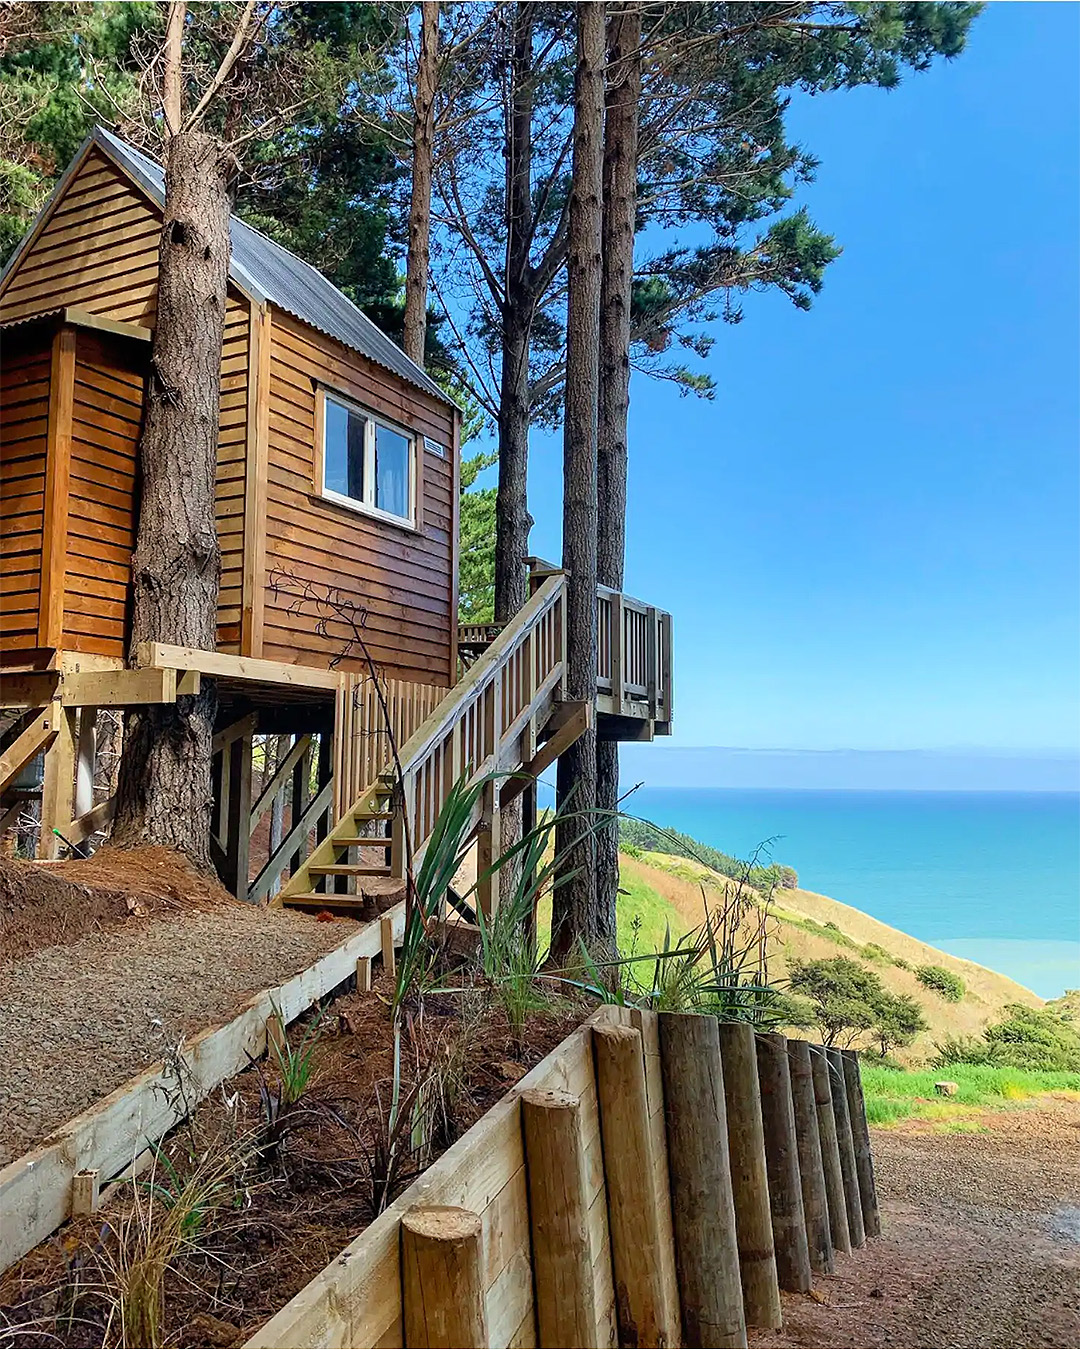 The tree house at Raglan with blue skies in the background.